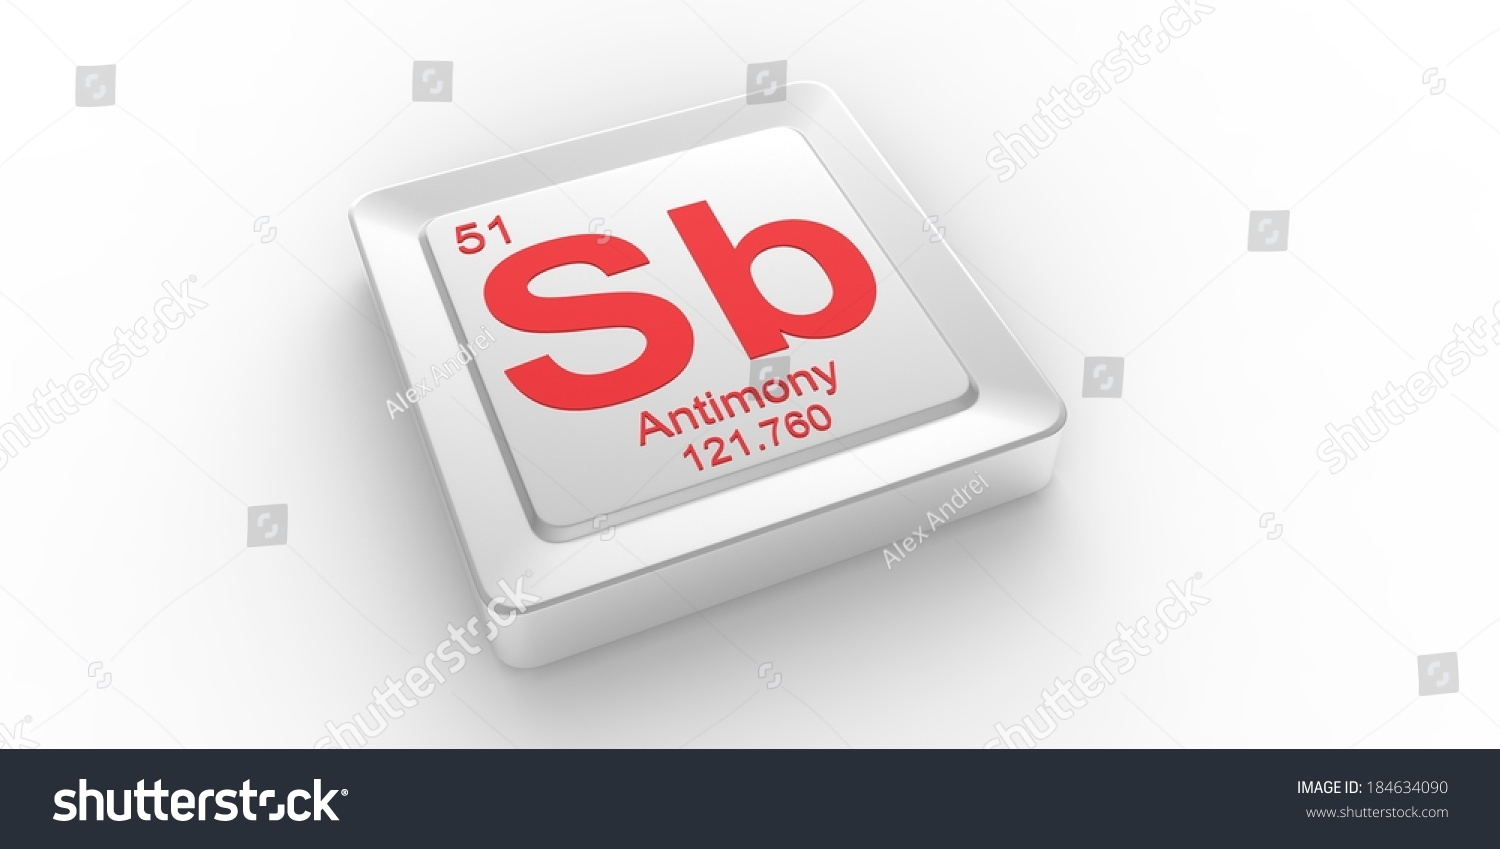 Sb symbol 51 material antimony chemical stock illustration sb symbol 51 material for antimony chemical element of the periodic table biocorpaavc Images